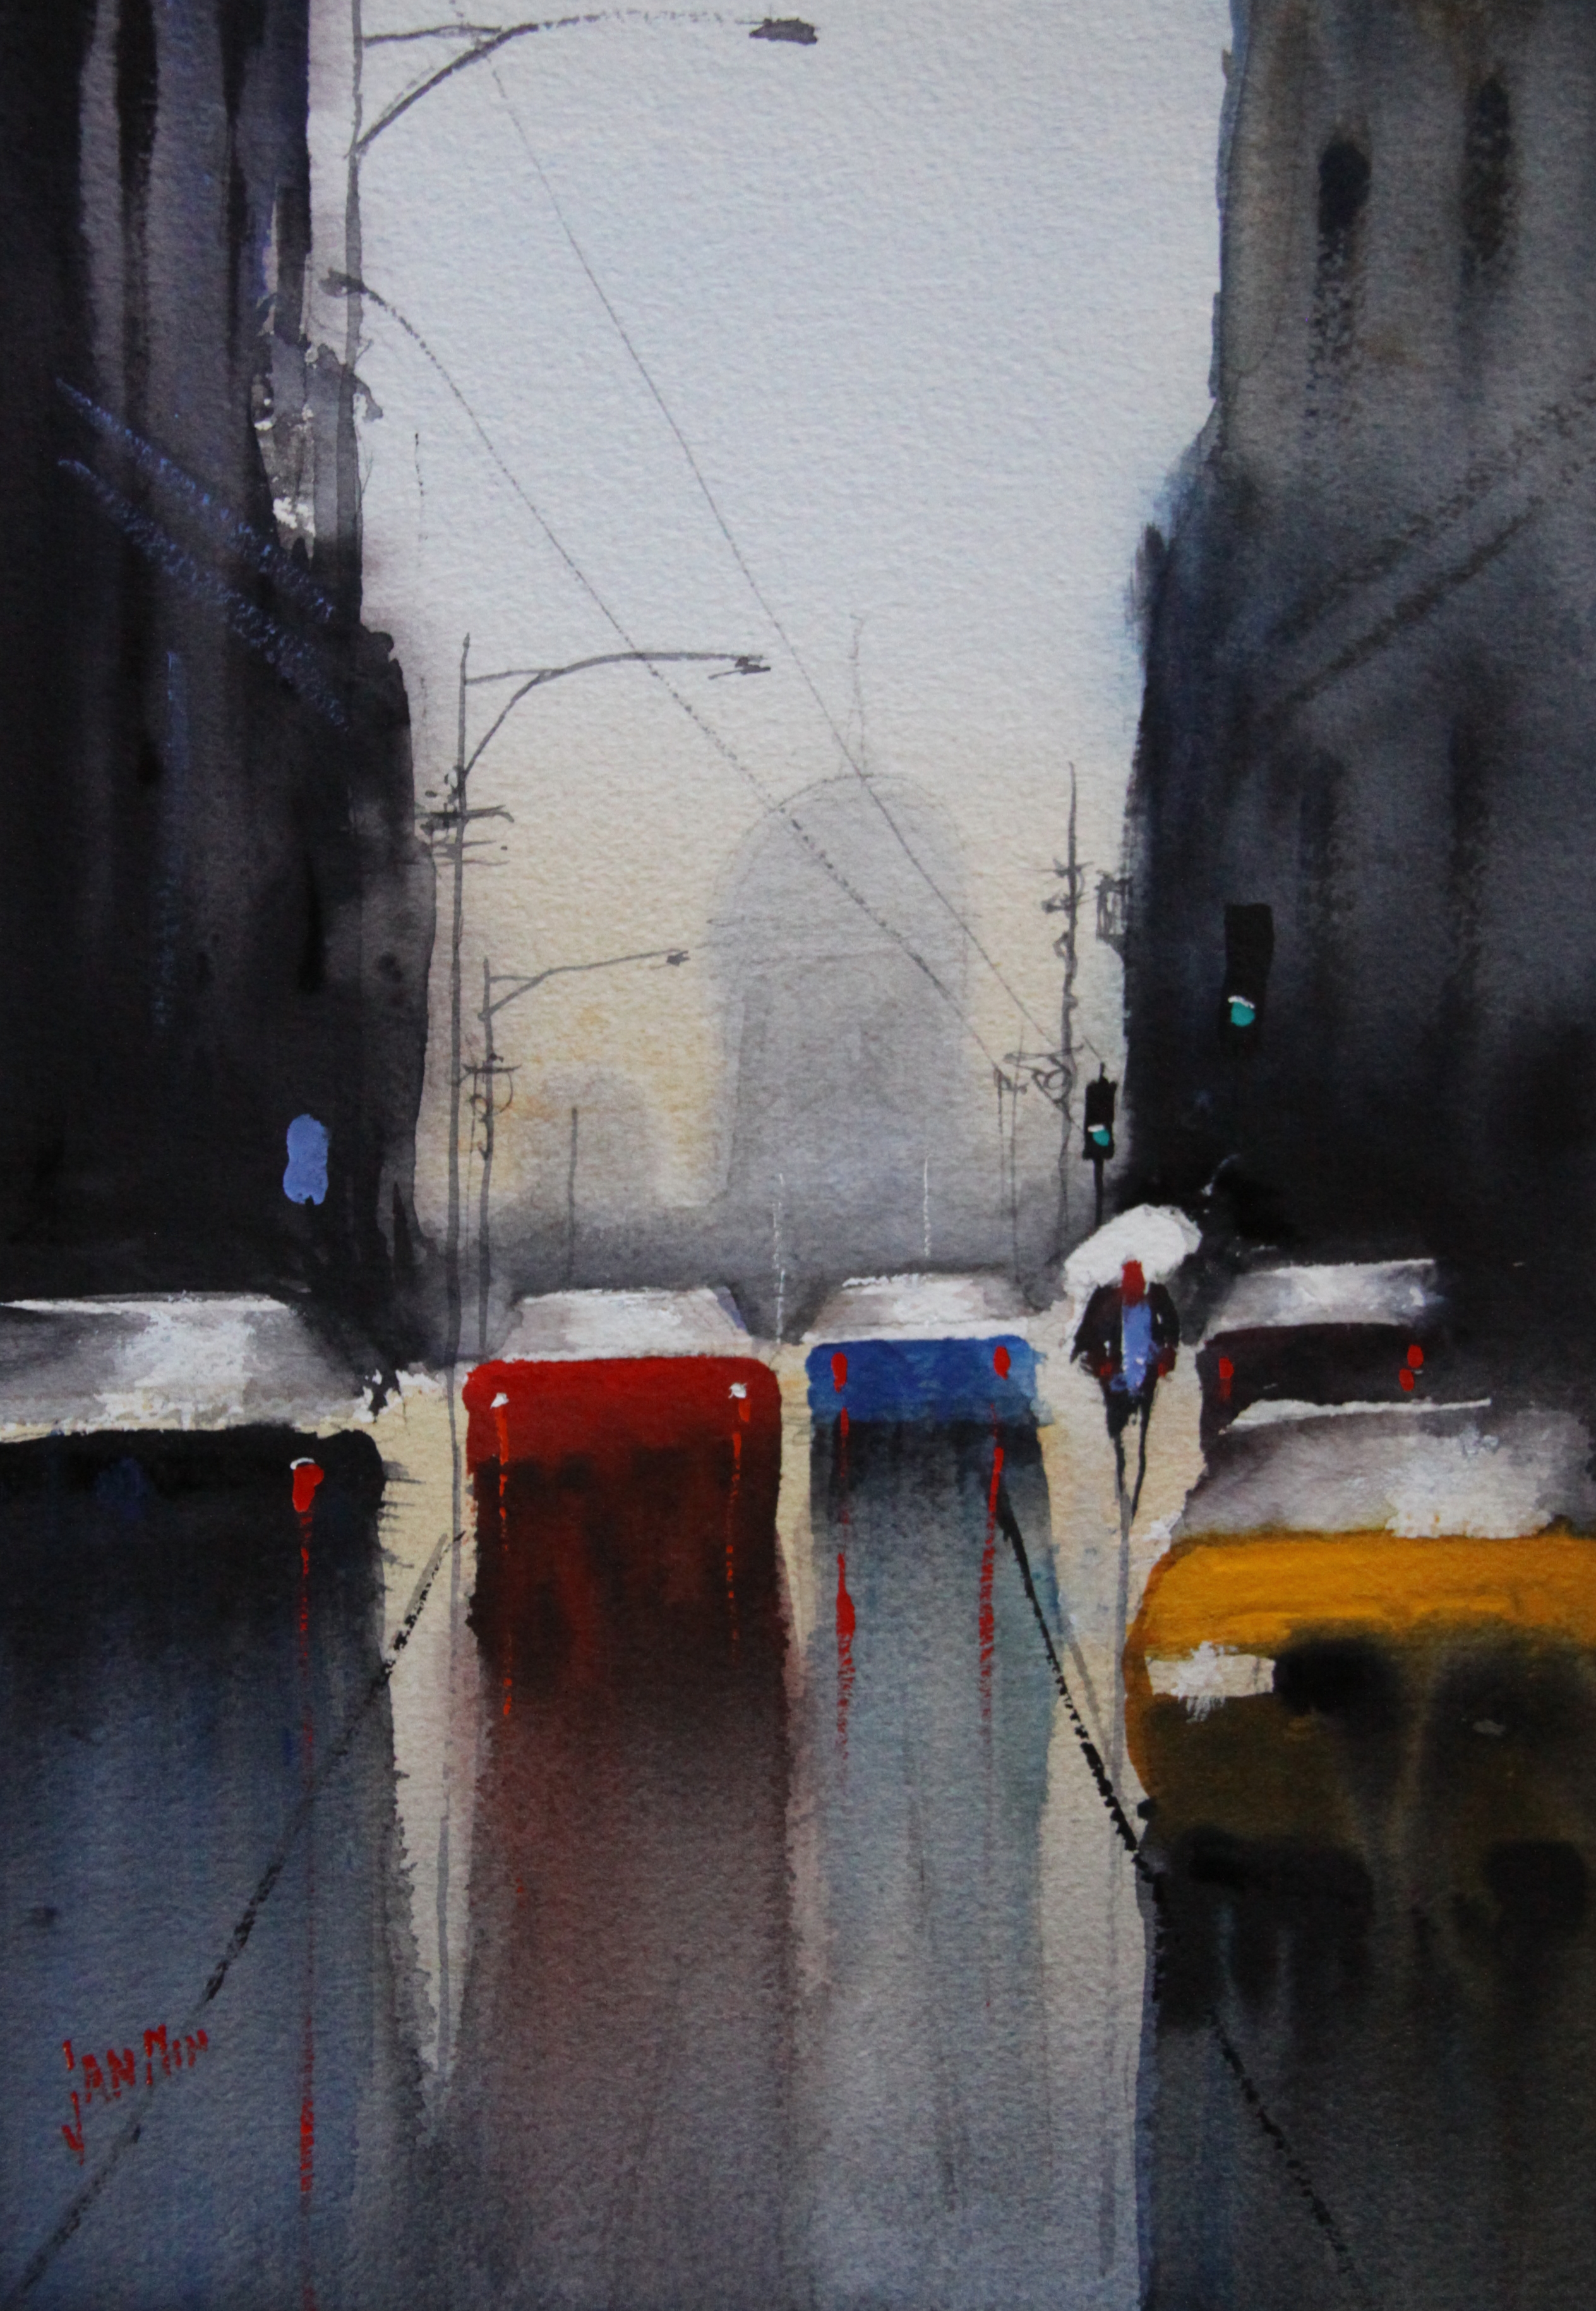 red,yellow and blue, New York:Janb Min:60 x 40 :€ 975cmJPG